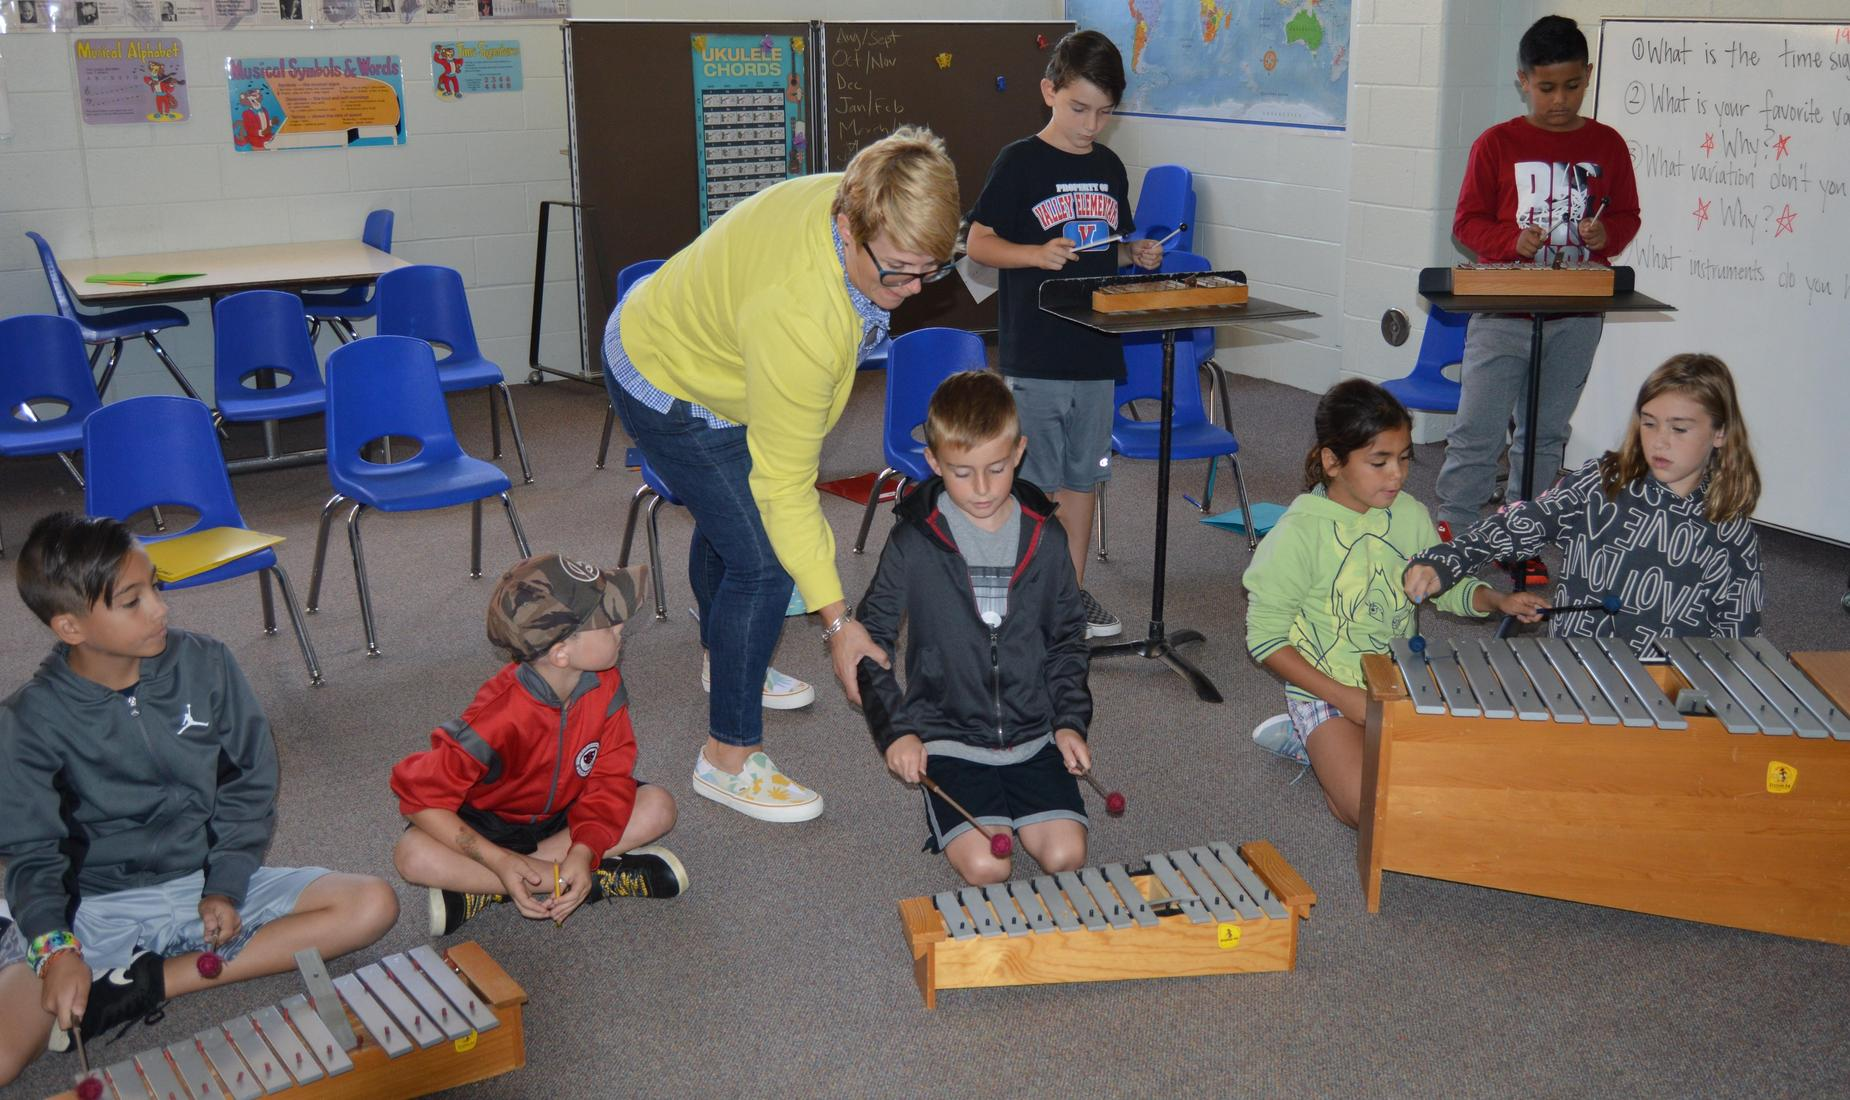 Girls and boys playing the xylophone in music class getting help from their teacher wearing a yellow sweater.